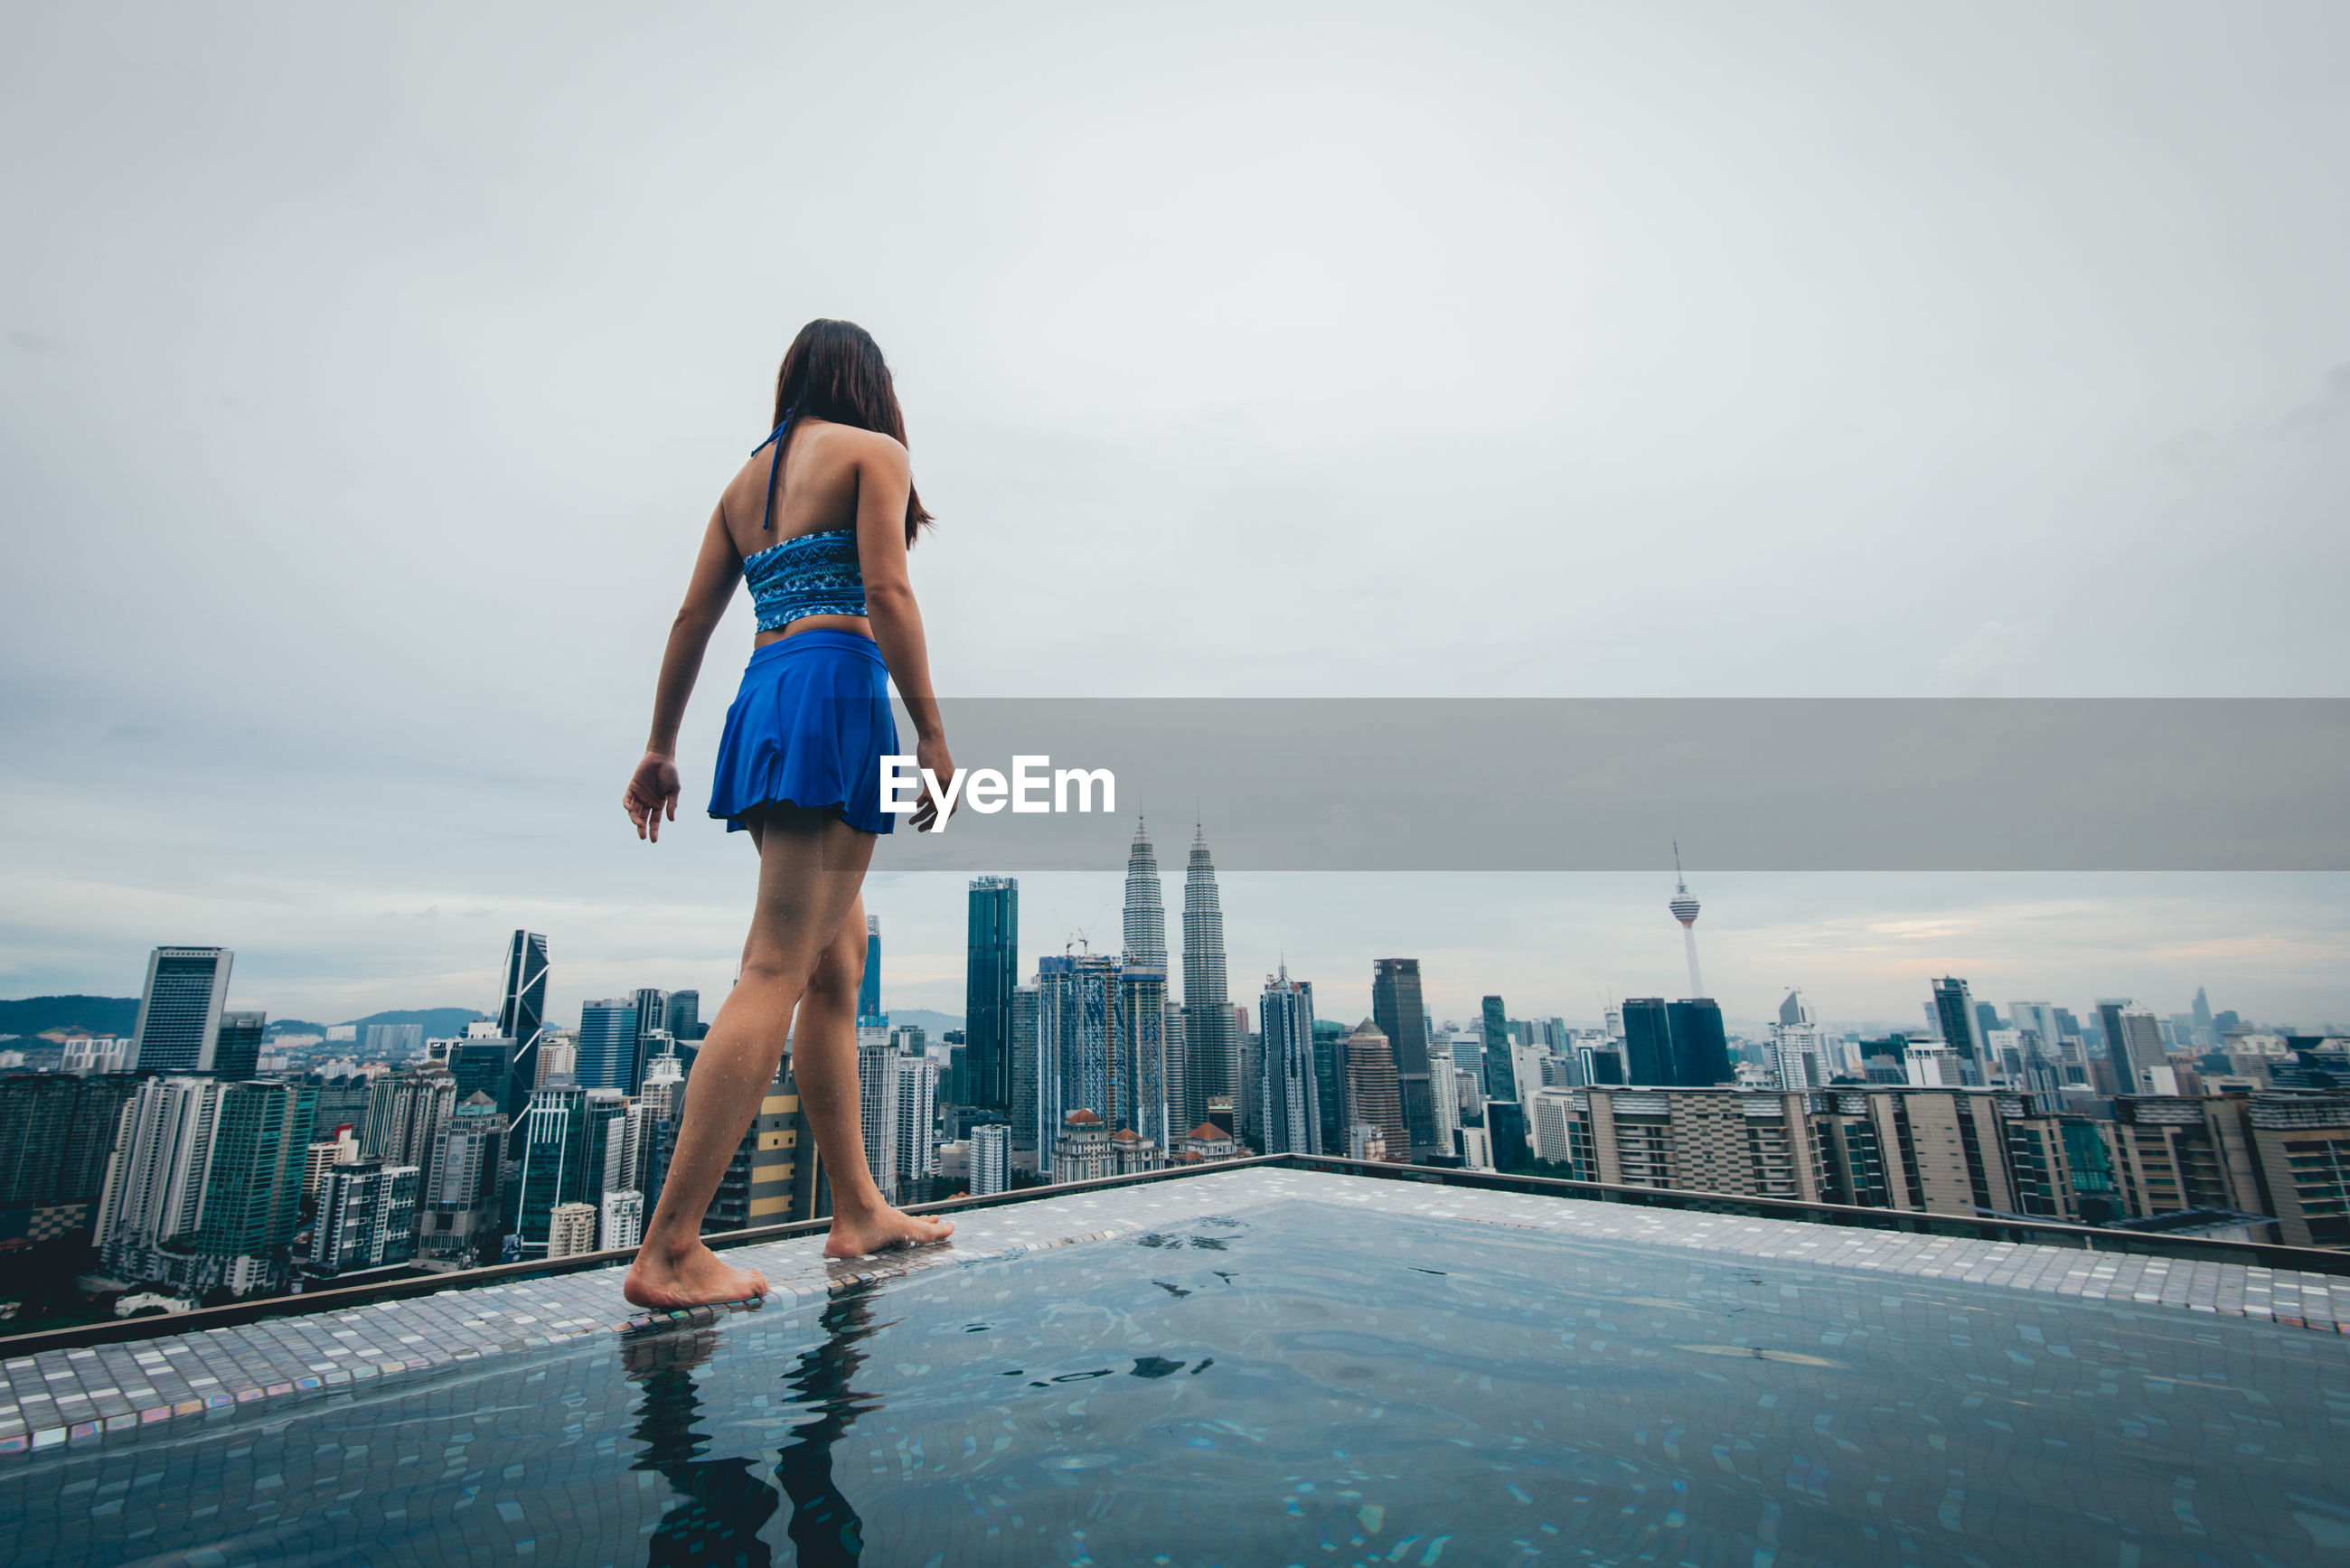 Rear view of woman standing by swimming pool against buildings in city